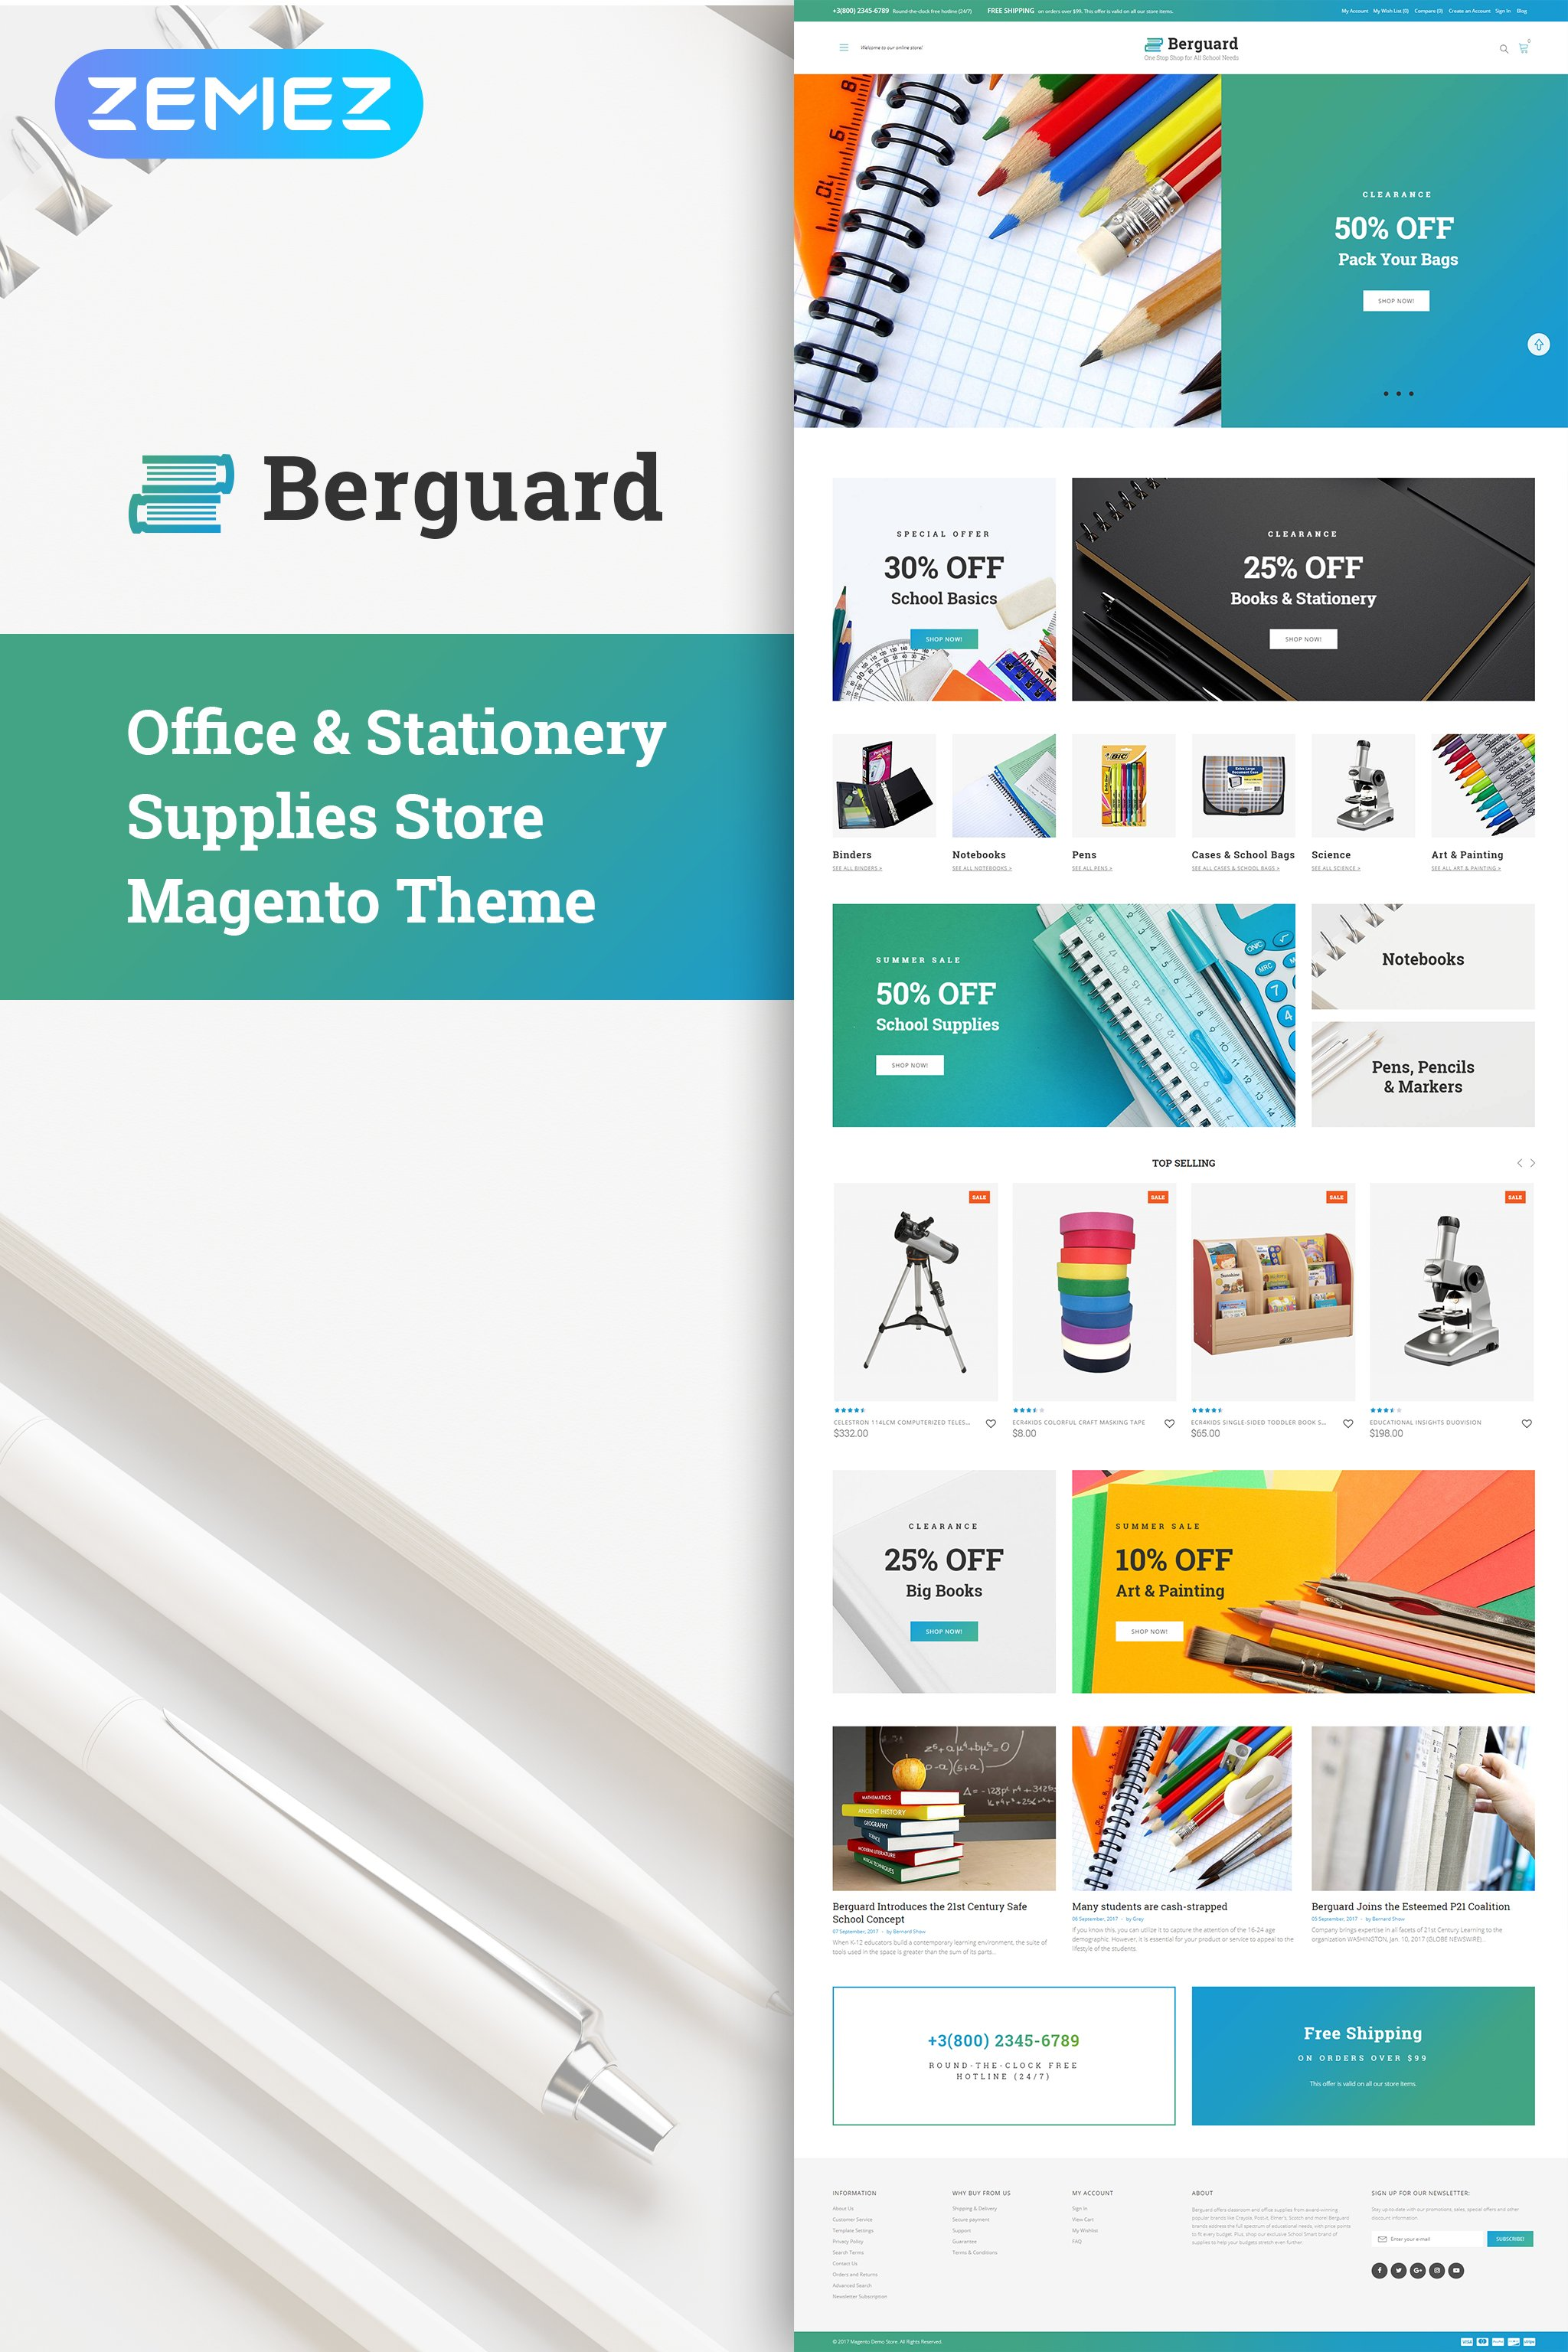 Berguard - Office & Stationery Supplies №64137